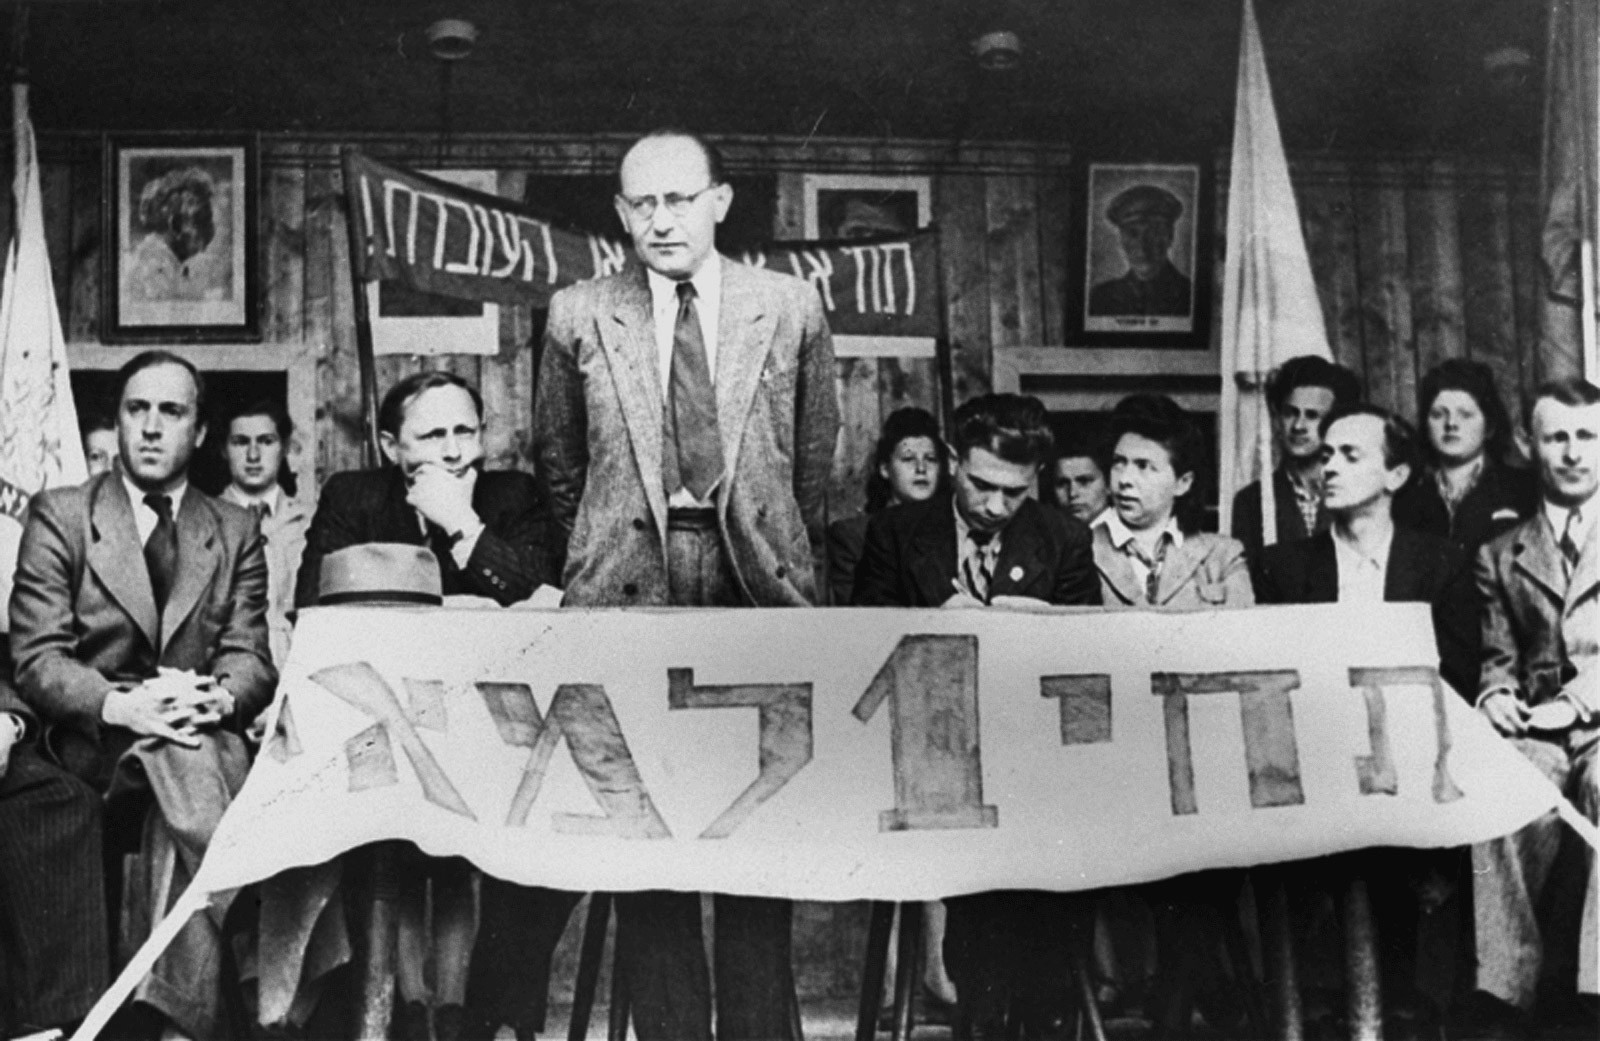 """May 1st, holiday of the working class: Chaim Yahil as emissary of the Jewish Agency with survivors of Nazi persecution (""""Displaced Persons"""") in the DP Camp of München-Neu-Freimann (1946 / 1948).  The Jewish Agency organized Jewish immigration to Palestine.  Photo: Jack Sutin / United States Holocaust Memorial Museum, courtesy of Saul Sorrin. der NS-Verfolgung (""""Displaced Persons"""") im DP-Camp München-Neu-Freimann (1946 / 1948). Die Jewish Agency organisierte die Einwanderung nach Palästina.  Foto: Jack Sutin / United States Holocaust Memorial Museum, courtesy of Saul Sorrin"""